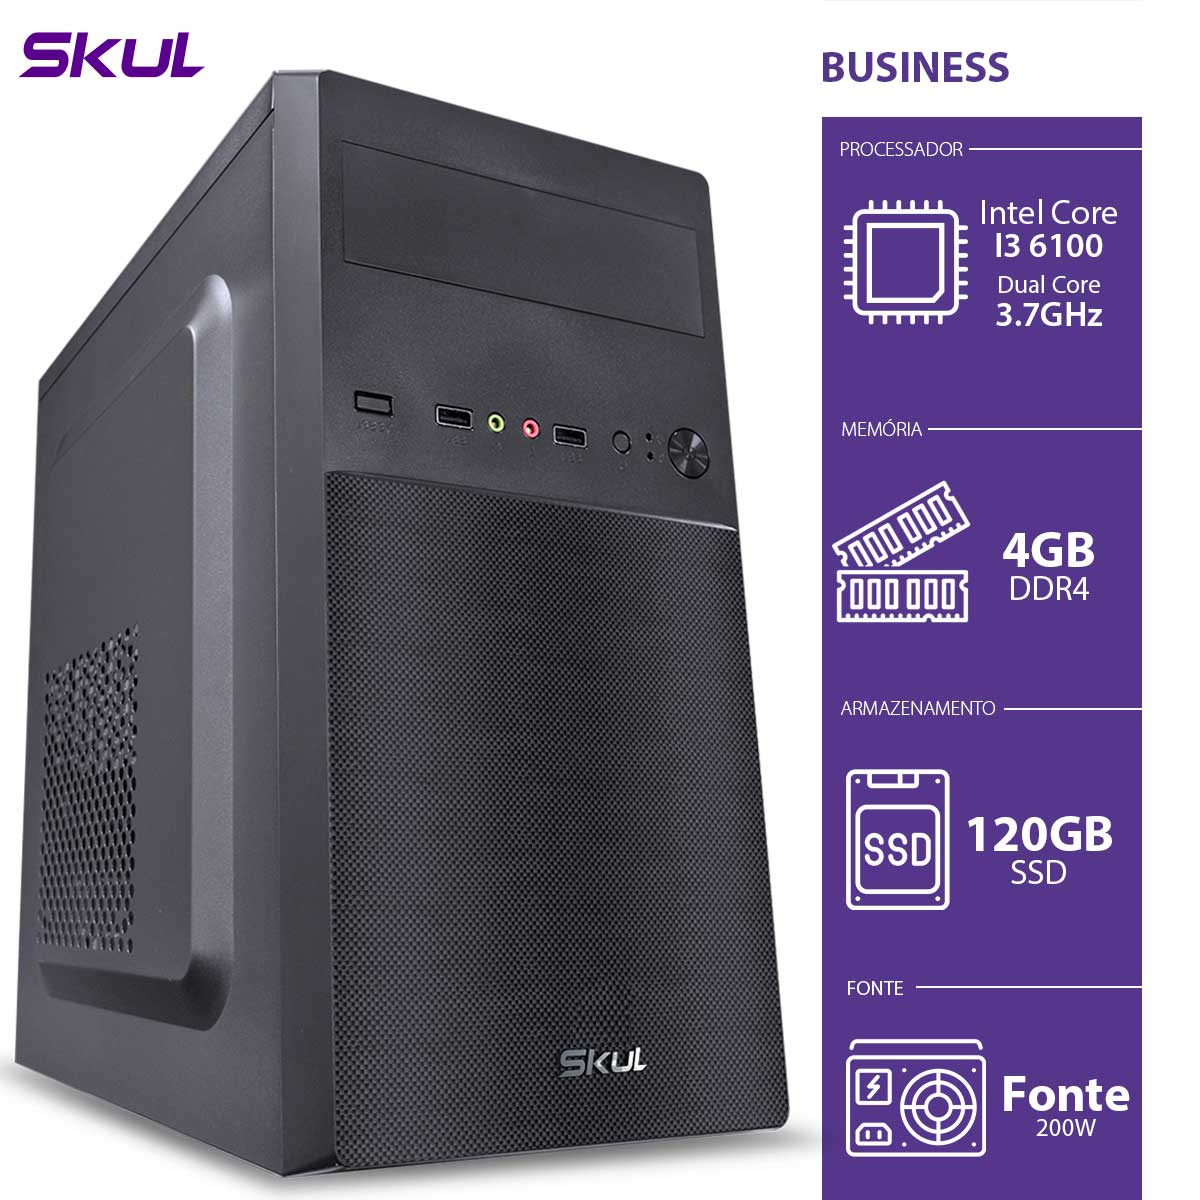 Computador Business B300 - I3-6100 3.7GHZ 4GB DDR4 SSD 120GB HDMI/VGA Fonte 200W